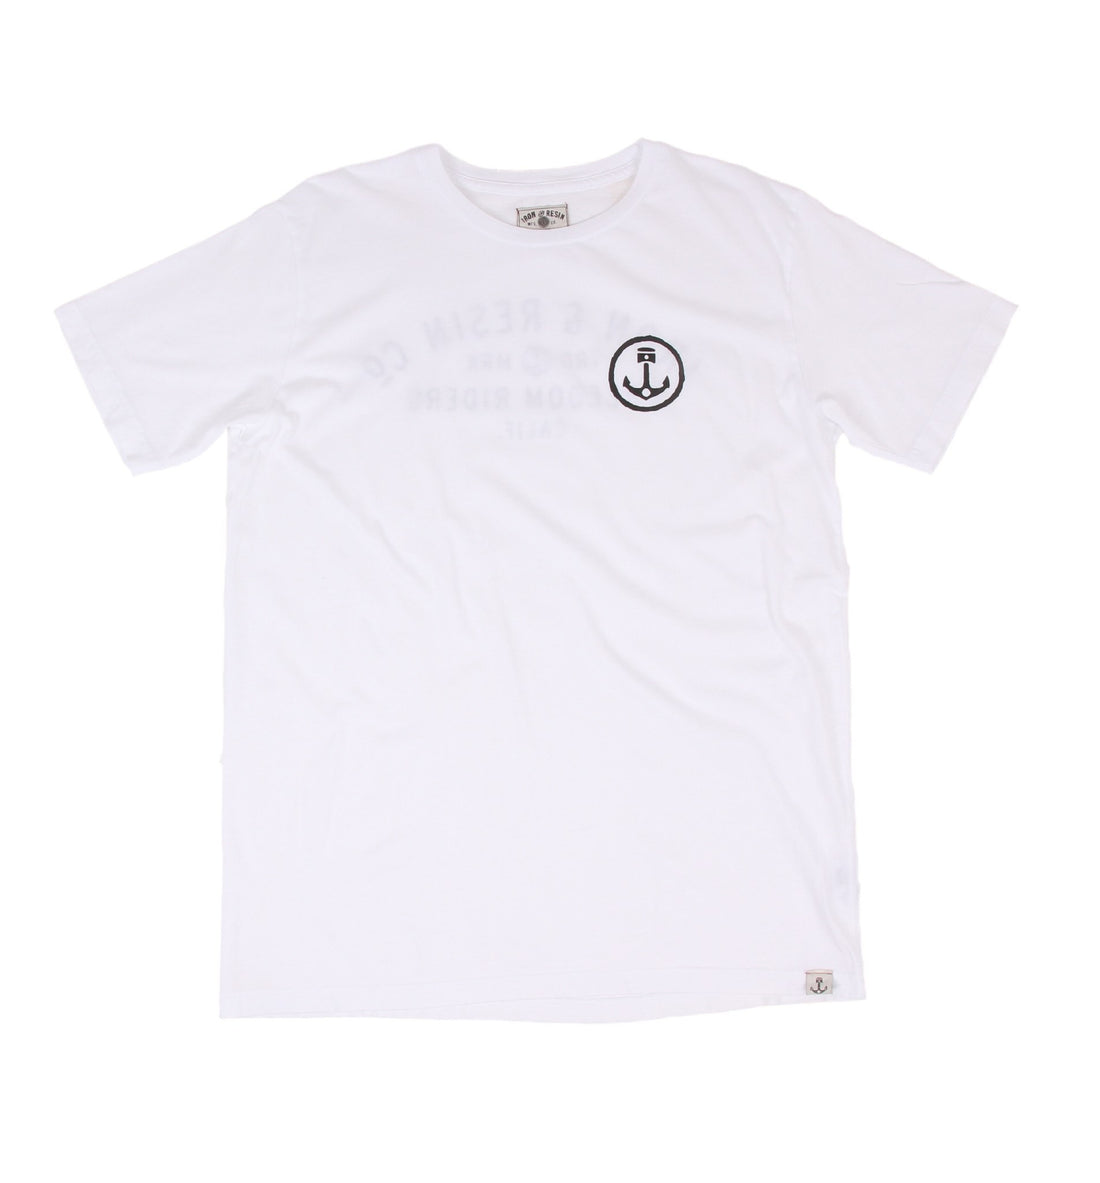 Overland Tee - Apparel: Men's: Graphic T-Shirts - Iron and Resin